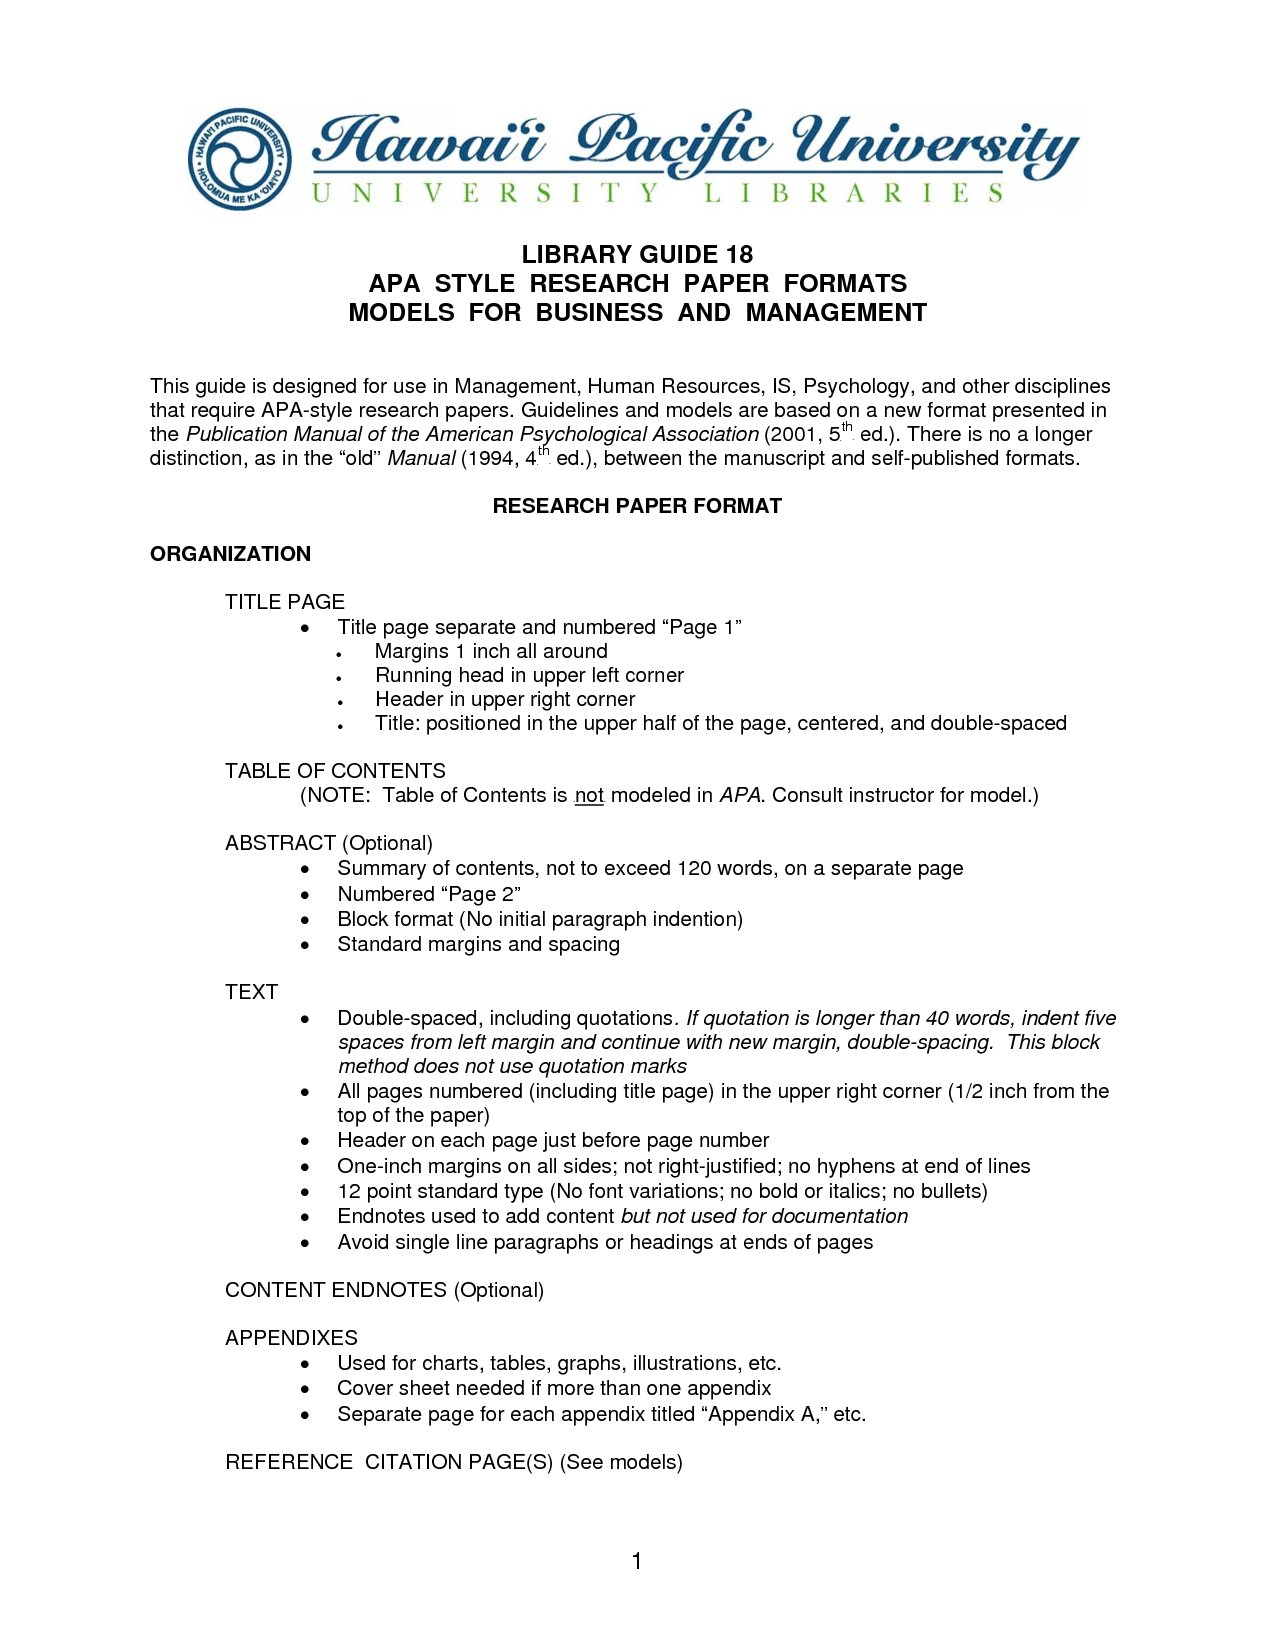 009 Research Statement Example Template Dgpr1ovi Paper Business Striking Topics Ethics Law And Full